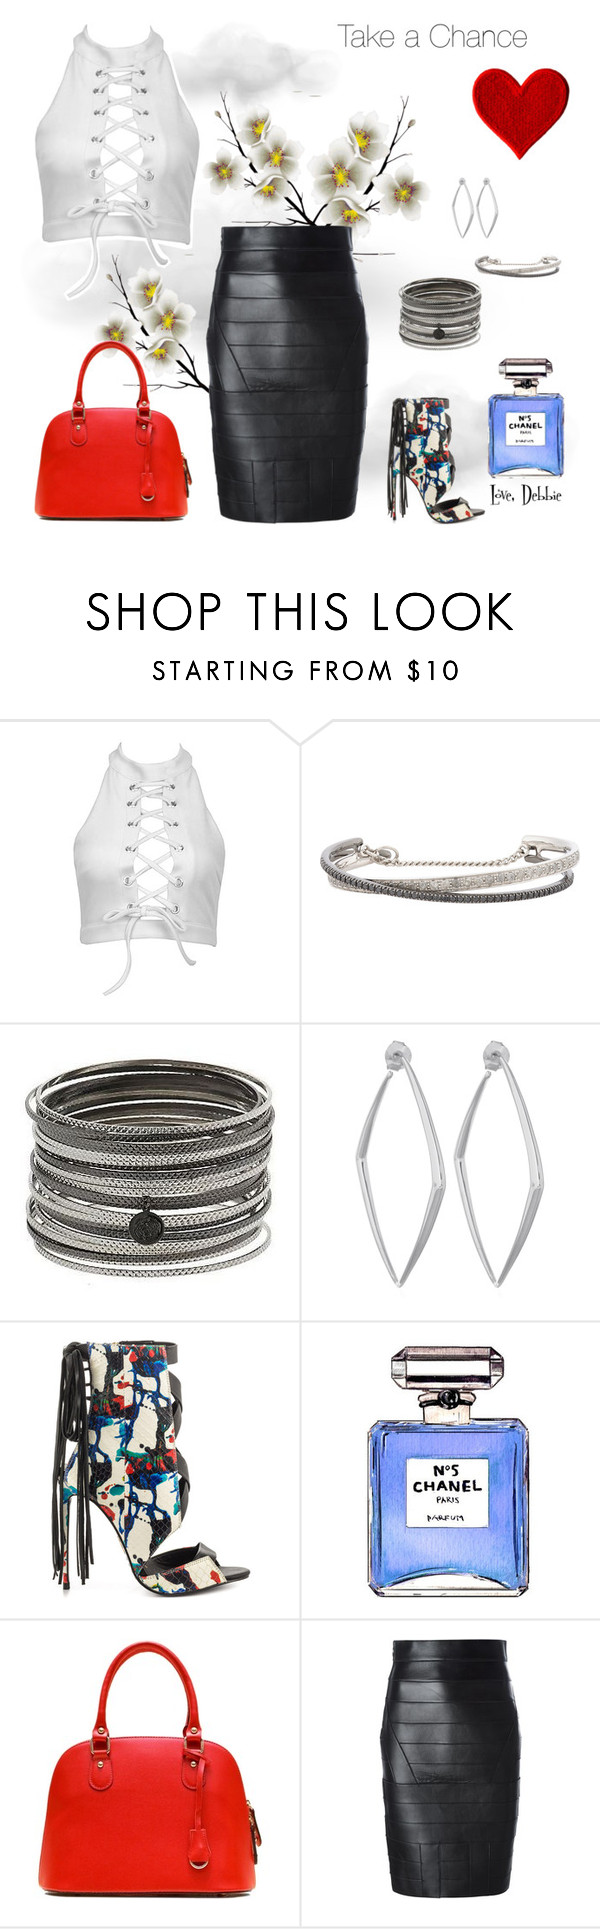 """""""Take a Chance"""" by debbie-michailides ❤ liked on Polyvore featuring Roberto Marroni, Susan Graver, Dinny Hall, Lust For Life, Chanel and Dsquared2"""